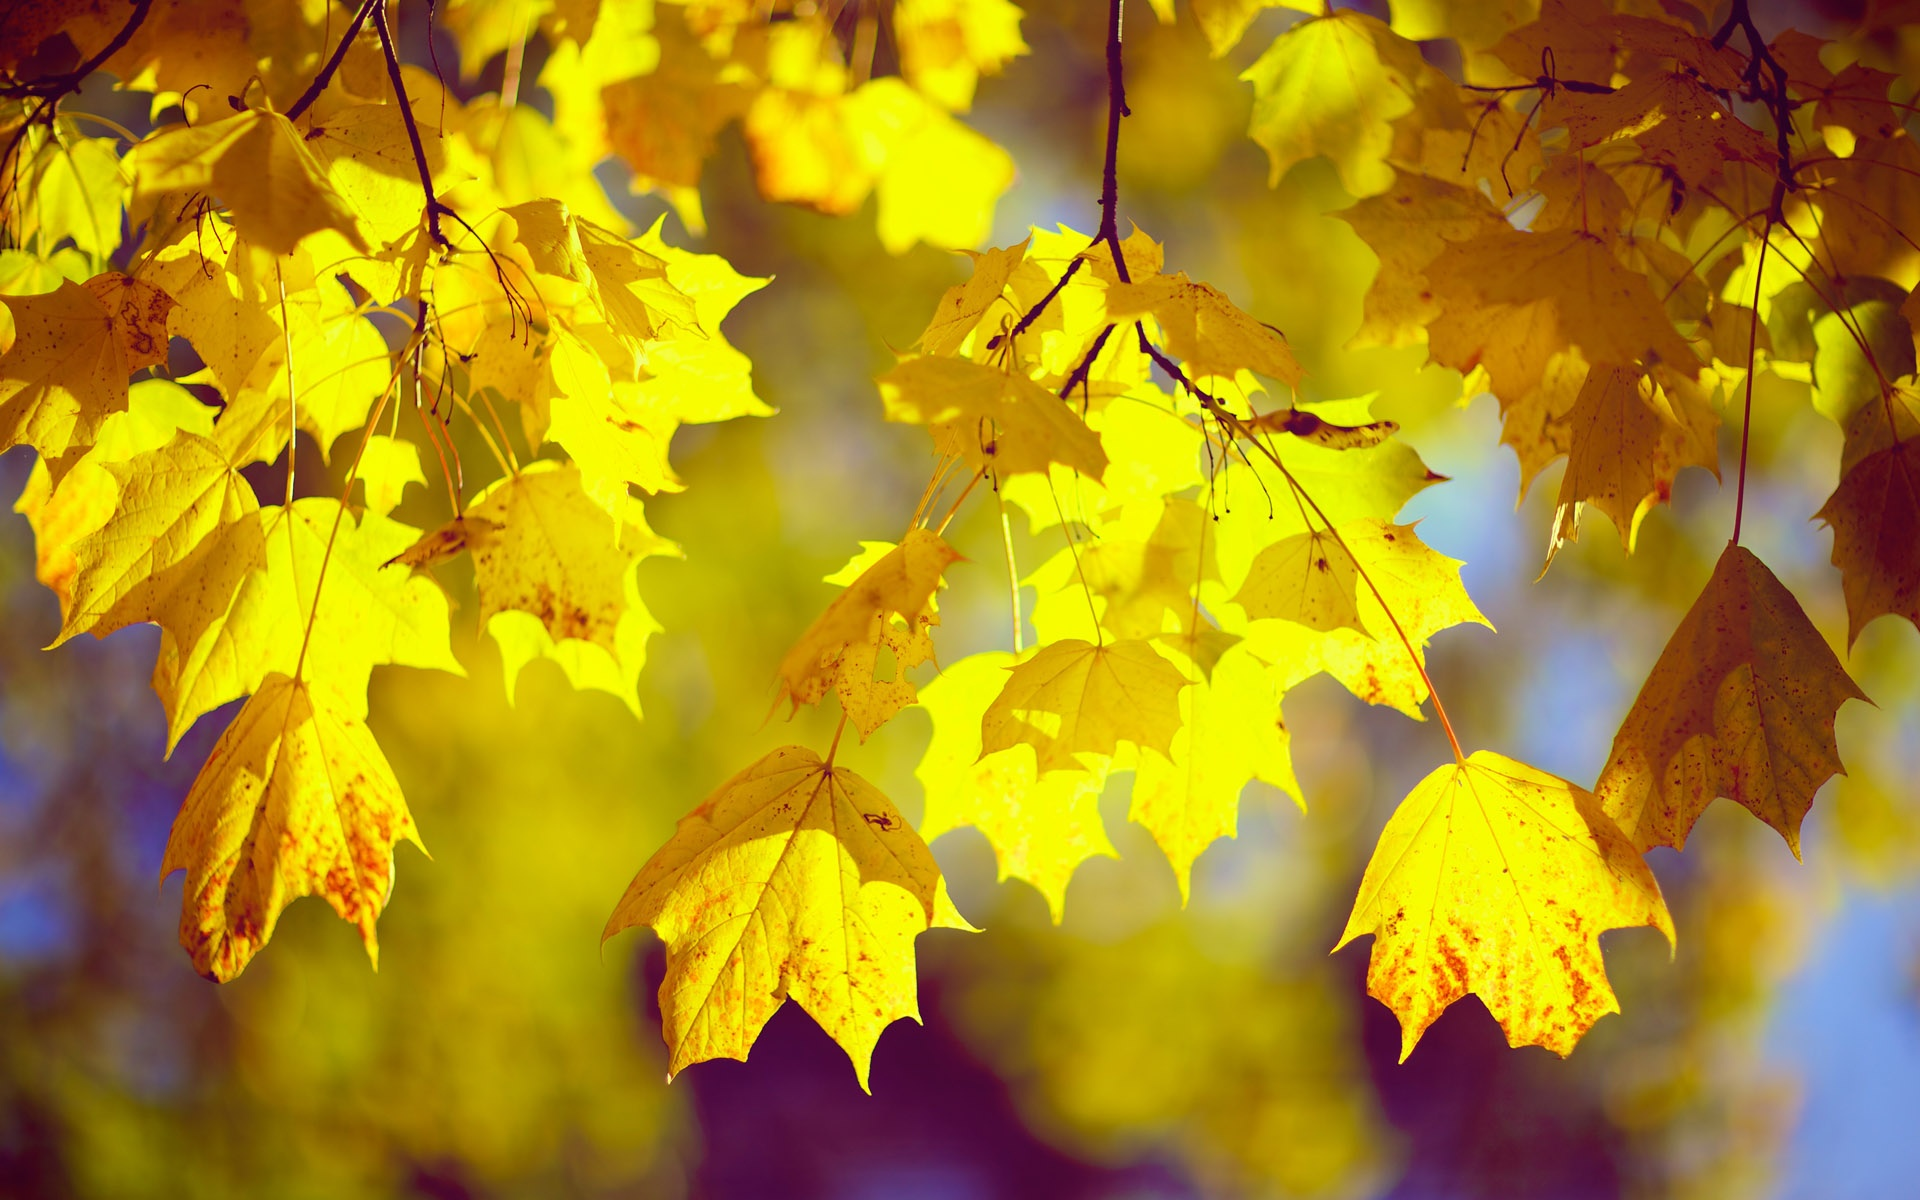 Fall leaves 1920x1200 Wallpaper 1920x1200